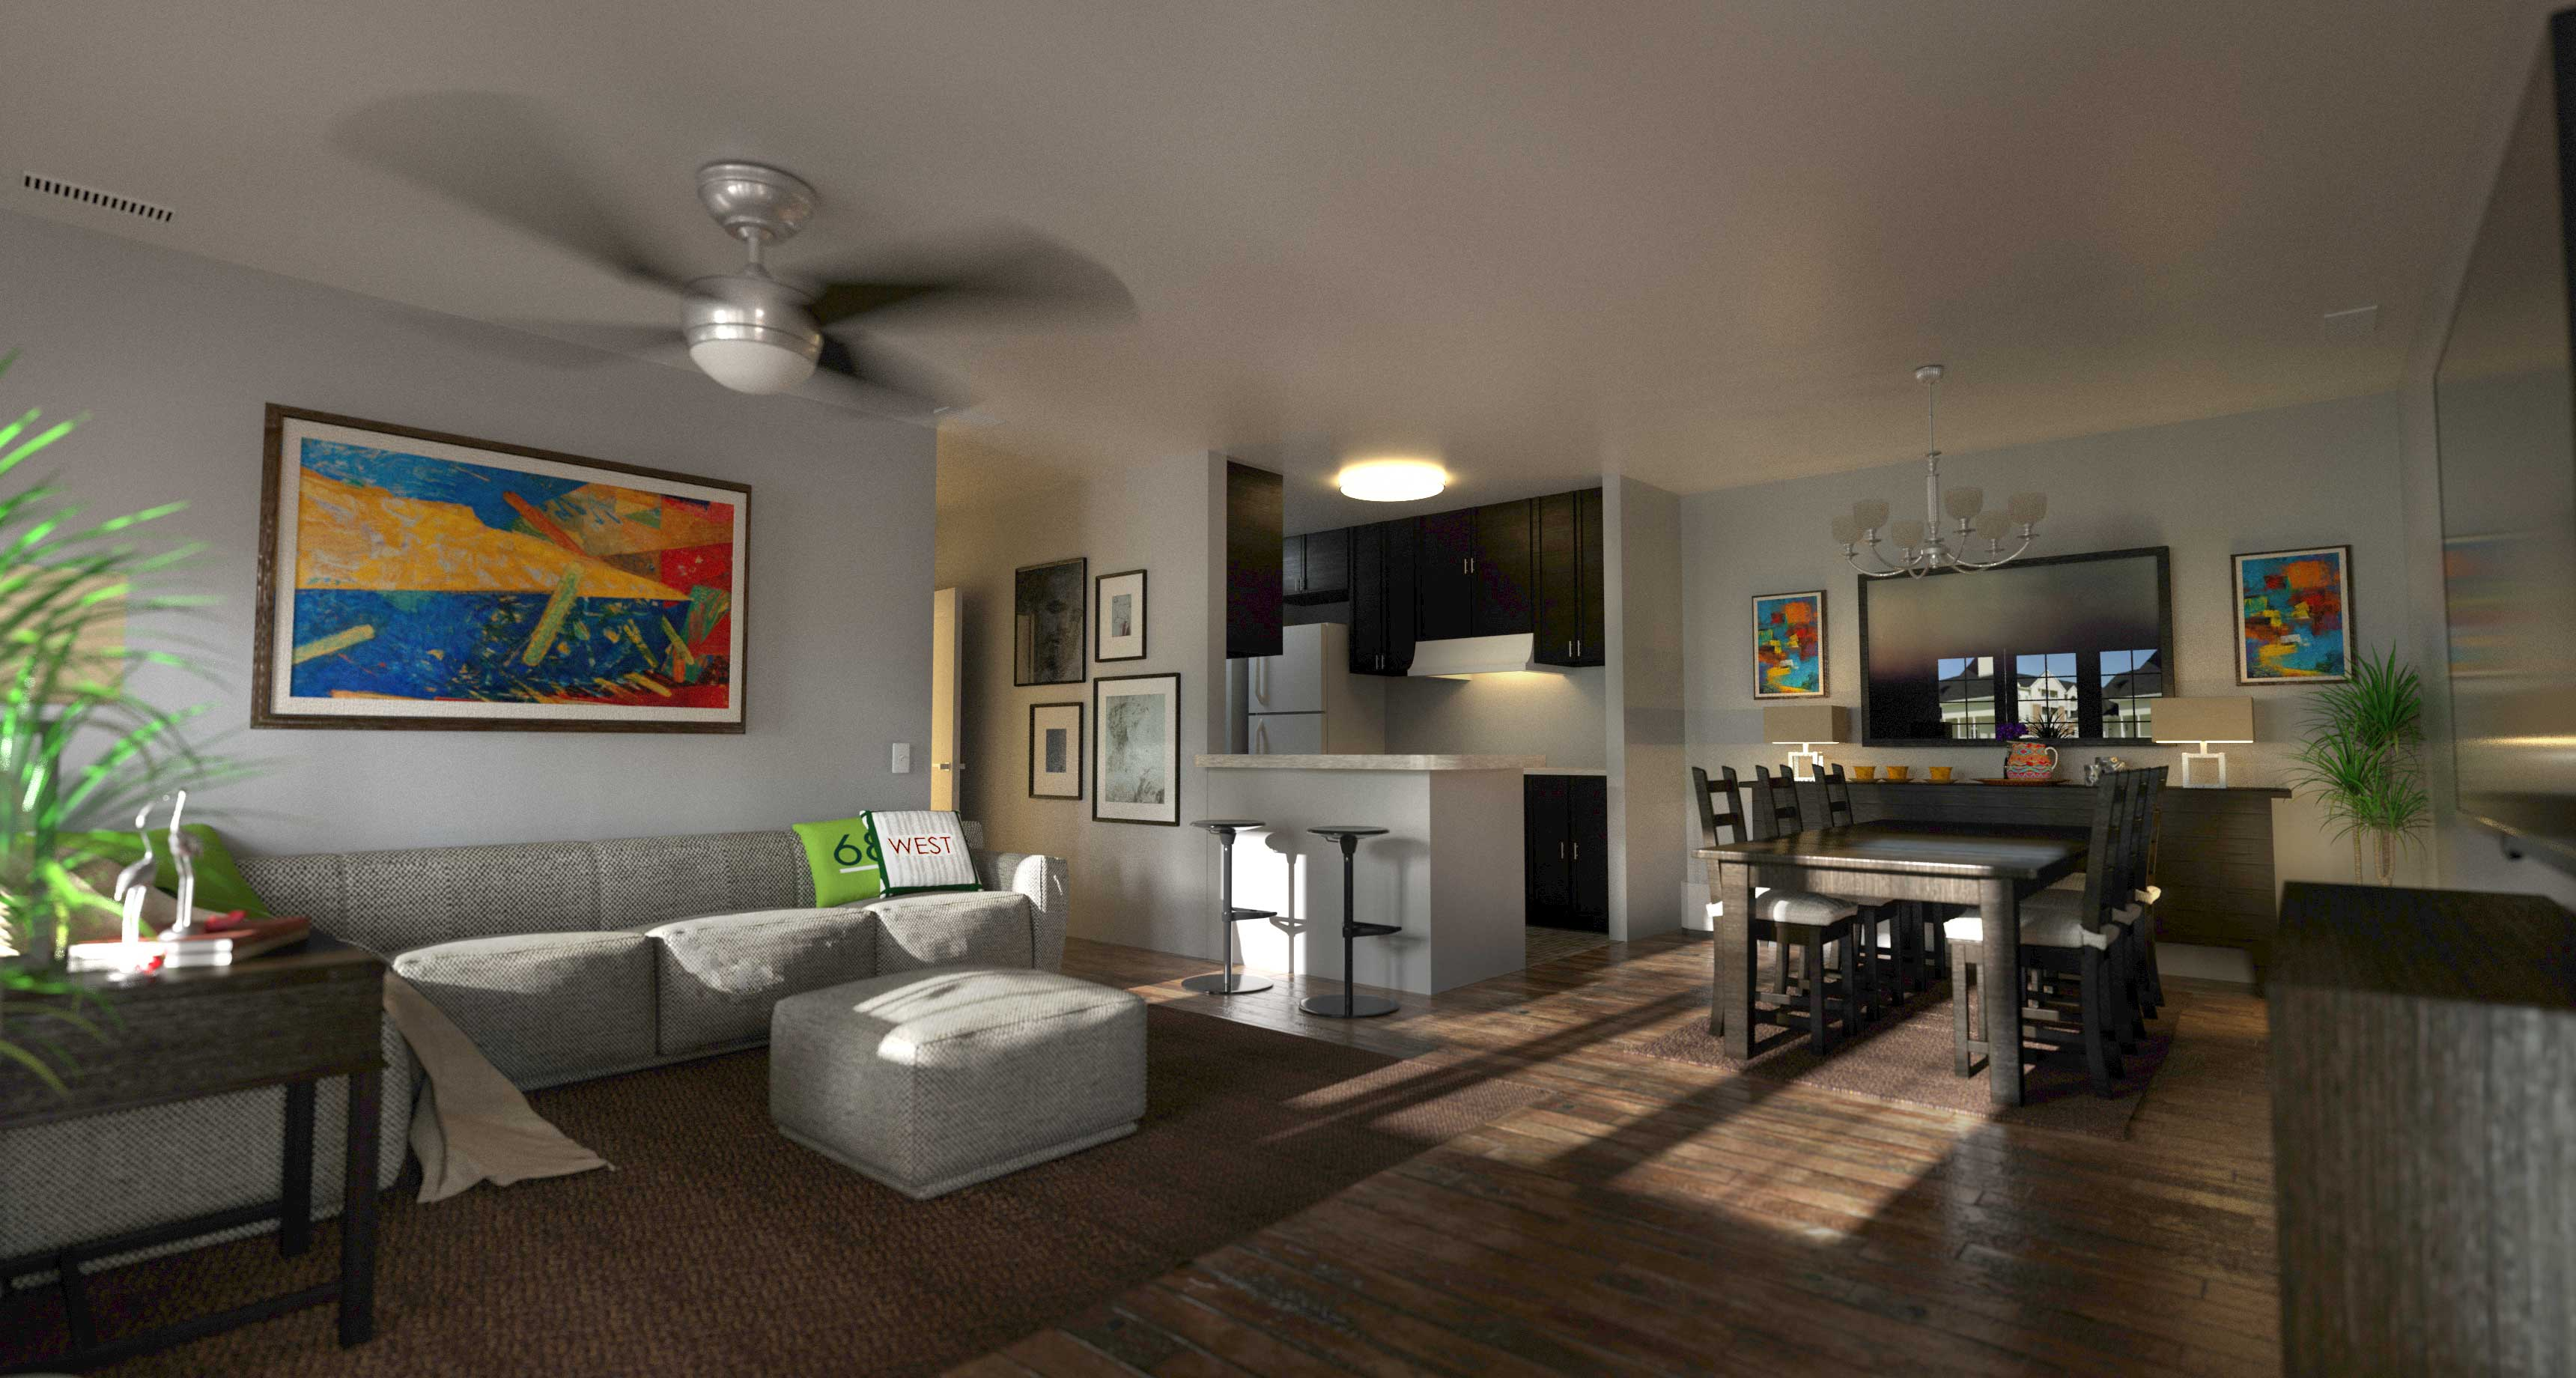 1068_interior_render_final-render_web